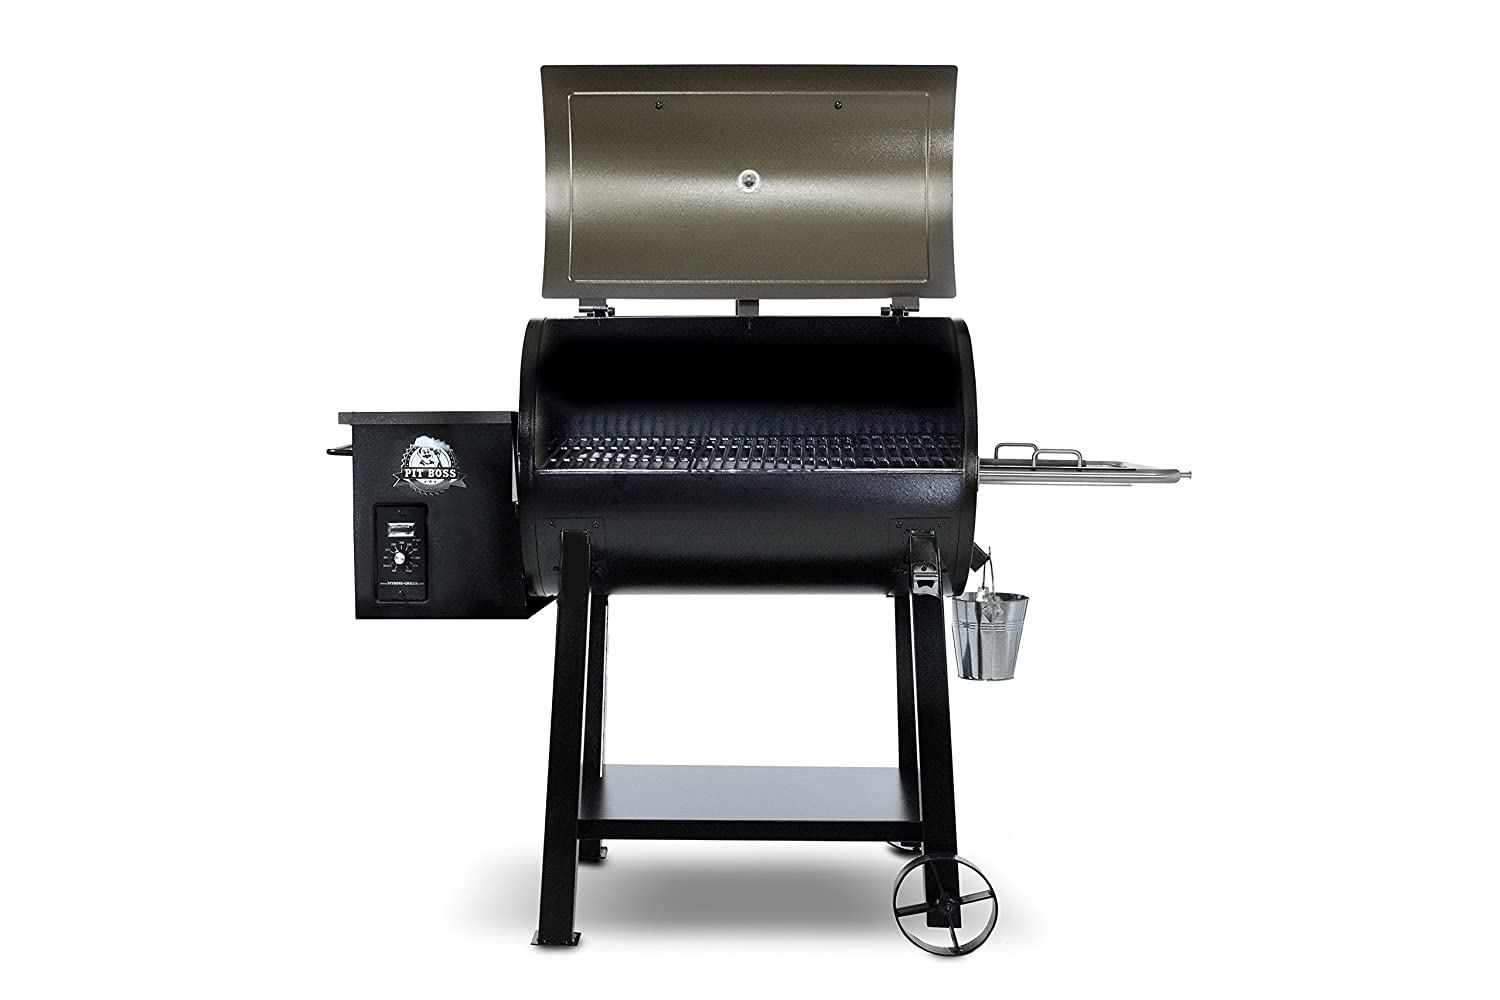 Pit Boss Grills 72440 Deluxe Wood Pellet Grill, 440 Square inches, White